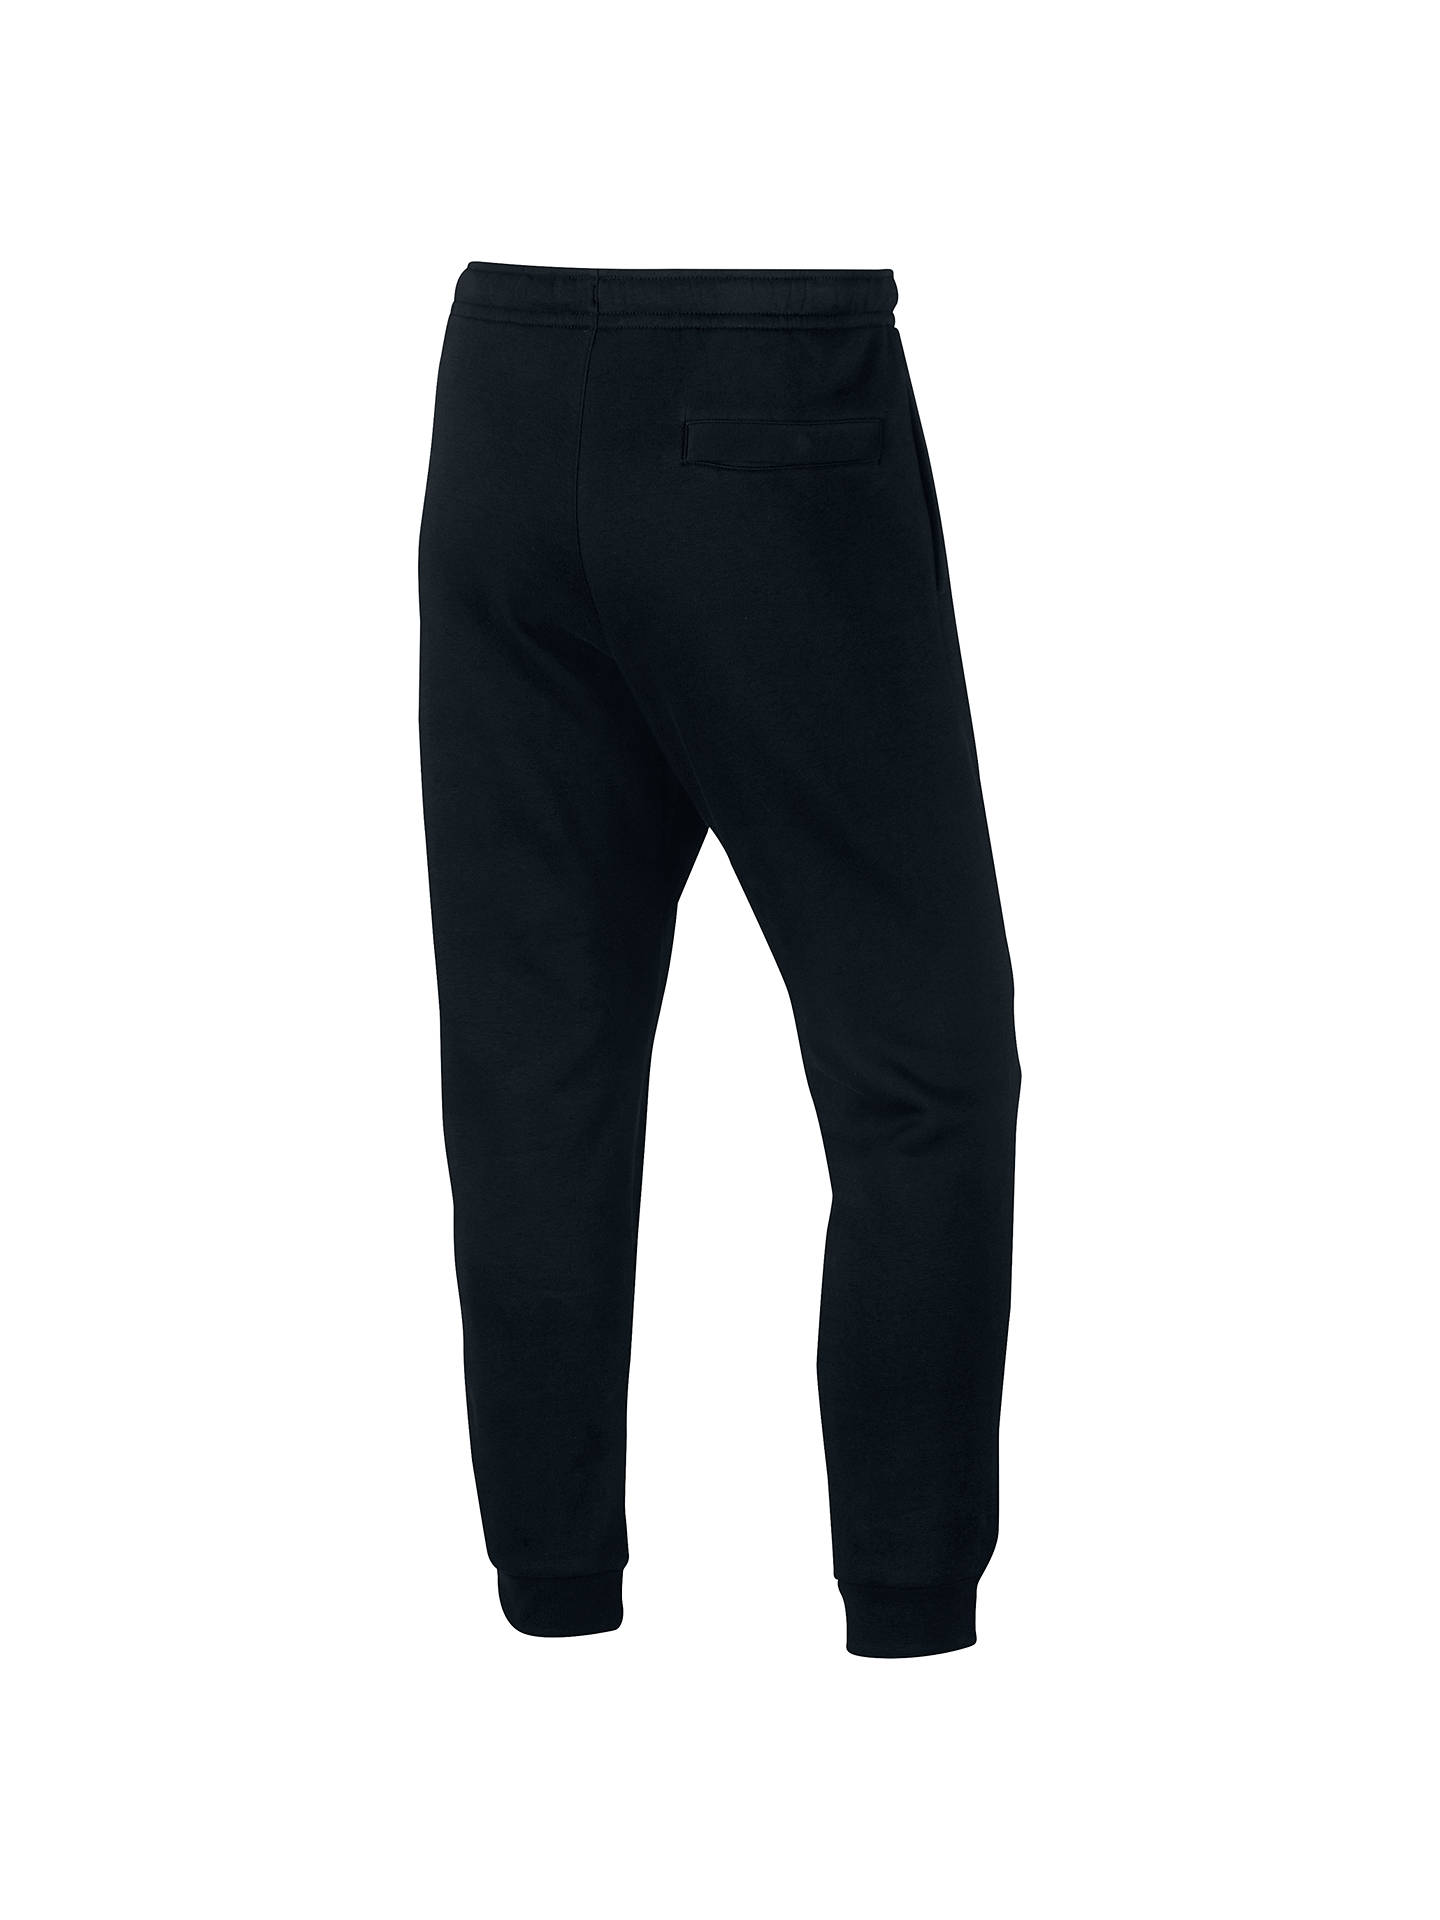 Buy Nike Tracksuit Bottoms, Black/White, M Online at johnlewis.com